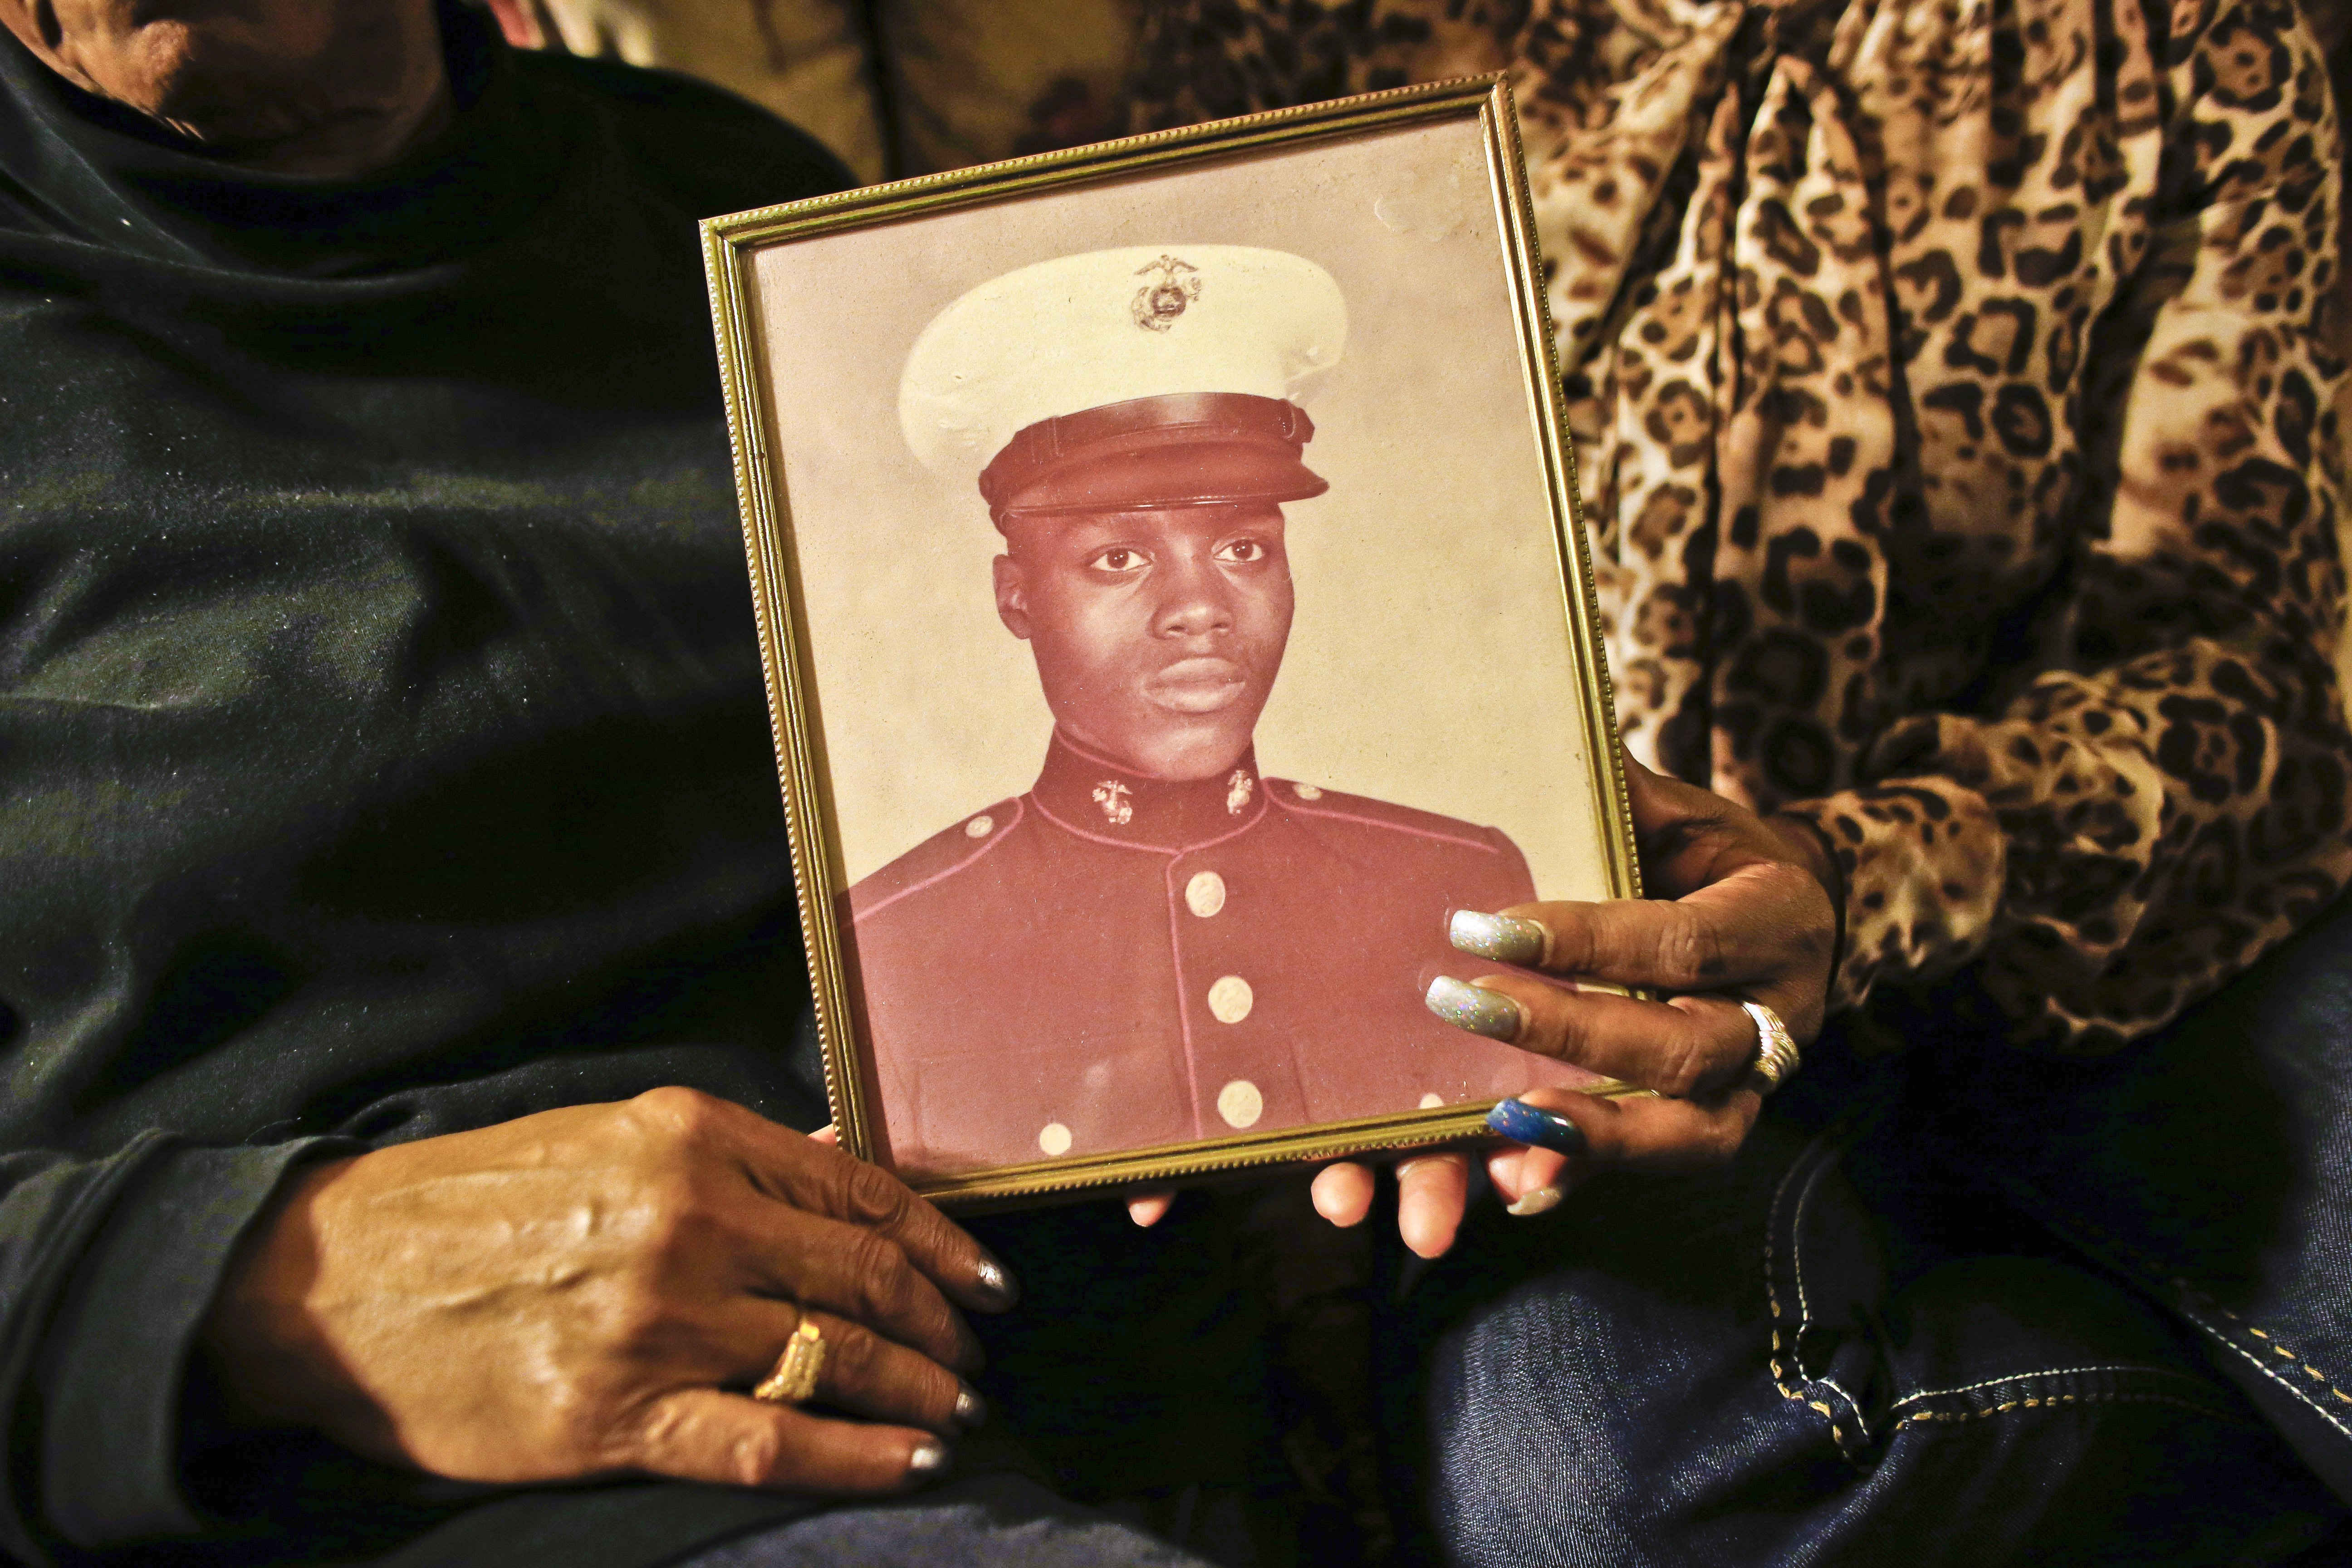 A picture of Jerome Murdough, a former homeless Marine who died in a mental observation unit on Rikers Island jail on Feb. 15, 2014 is held by his mother Alma Murdough left, and sister Cheryl Warner at Alma Murdough's home in the Queens borough of New York.